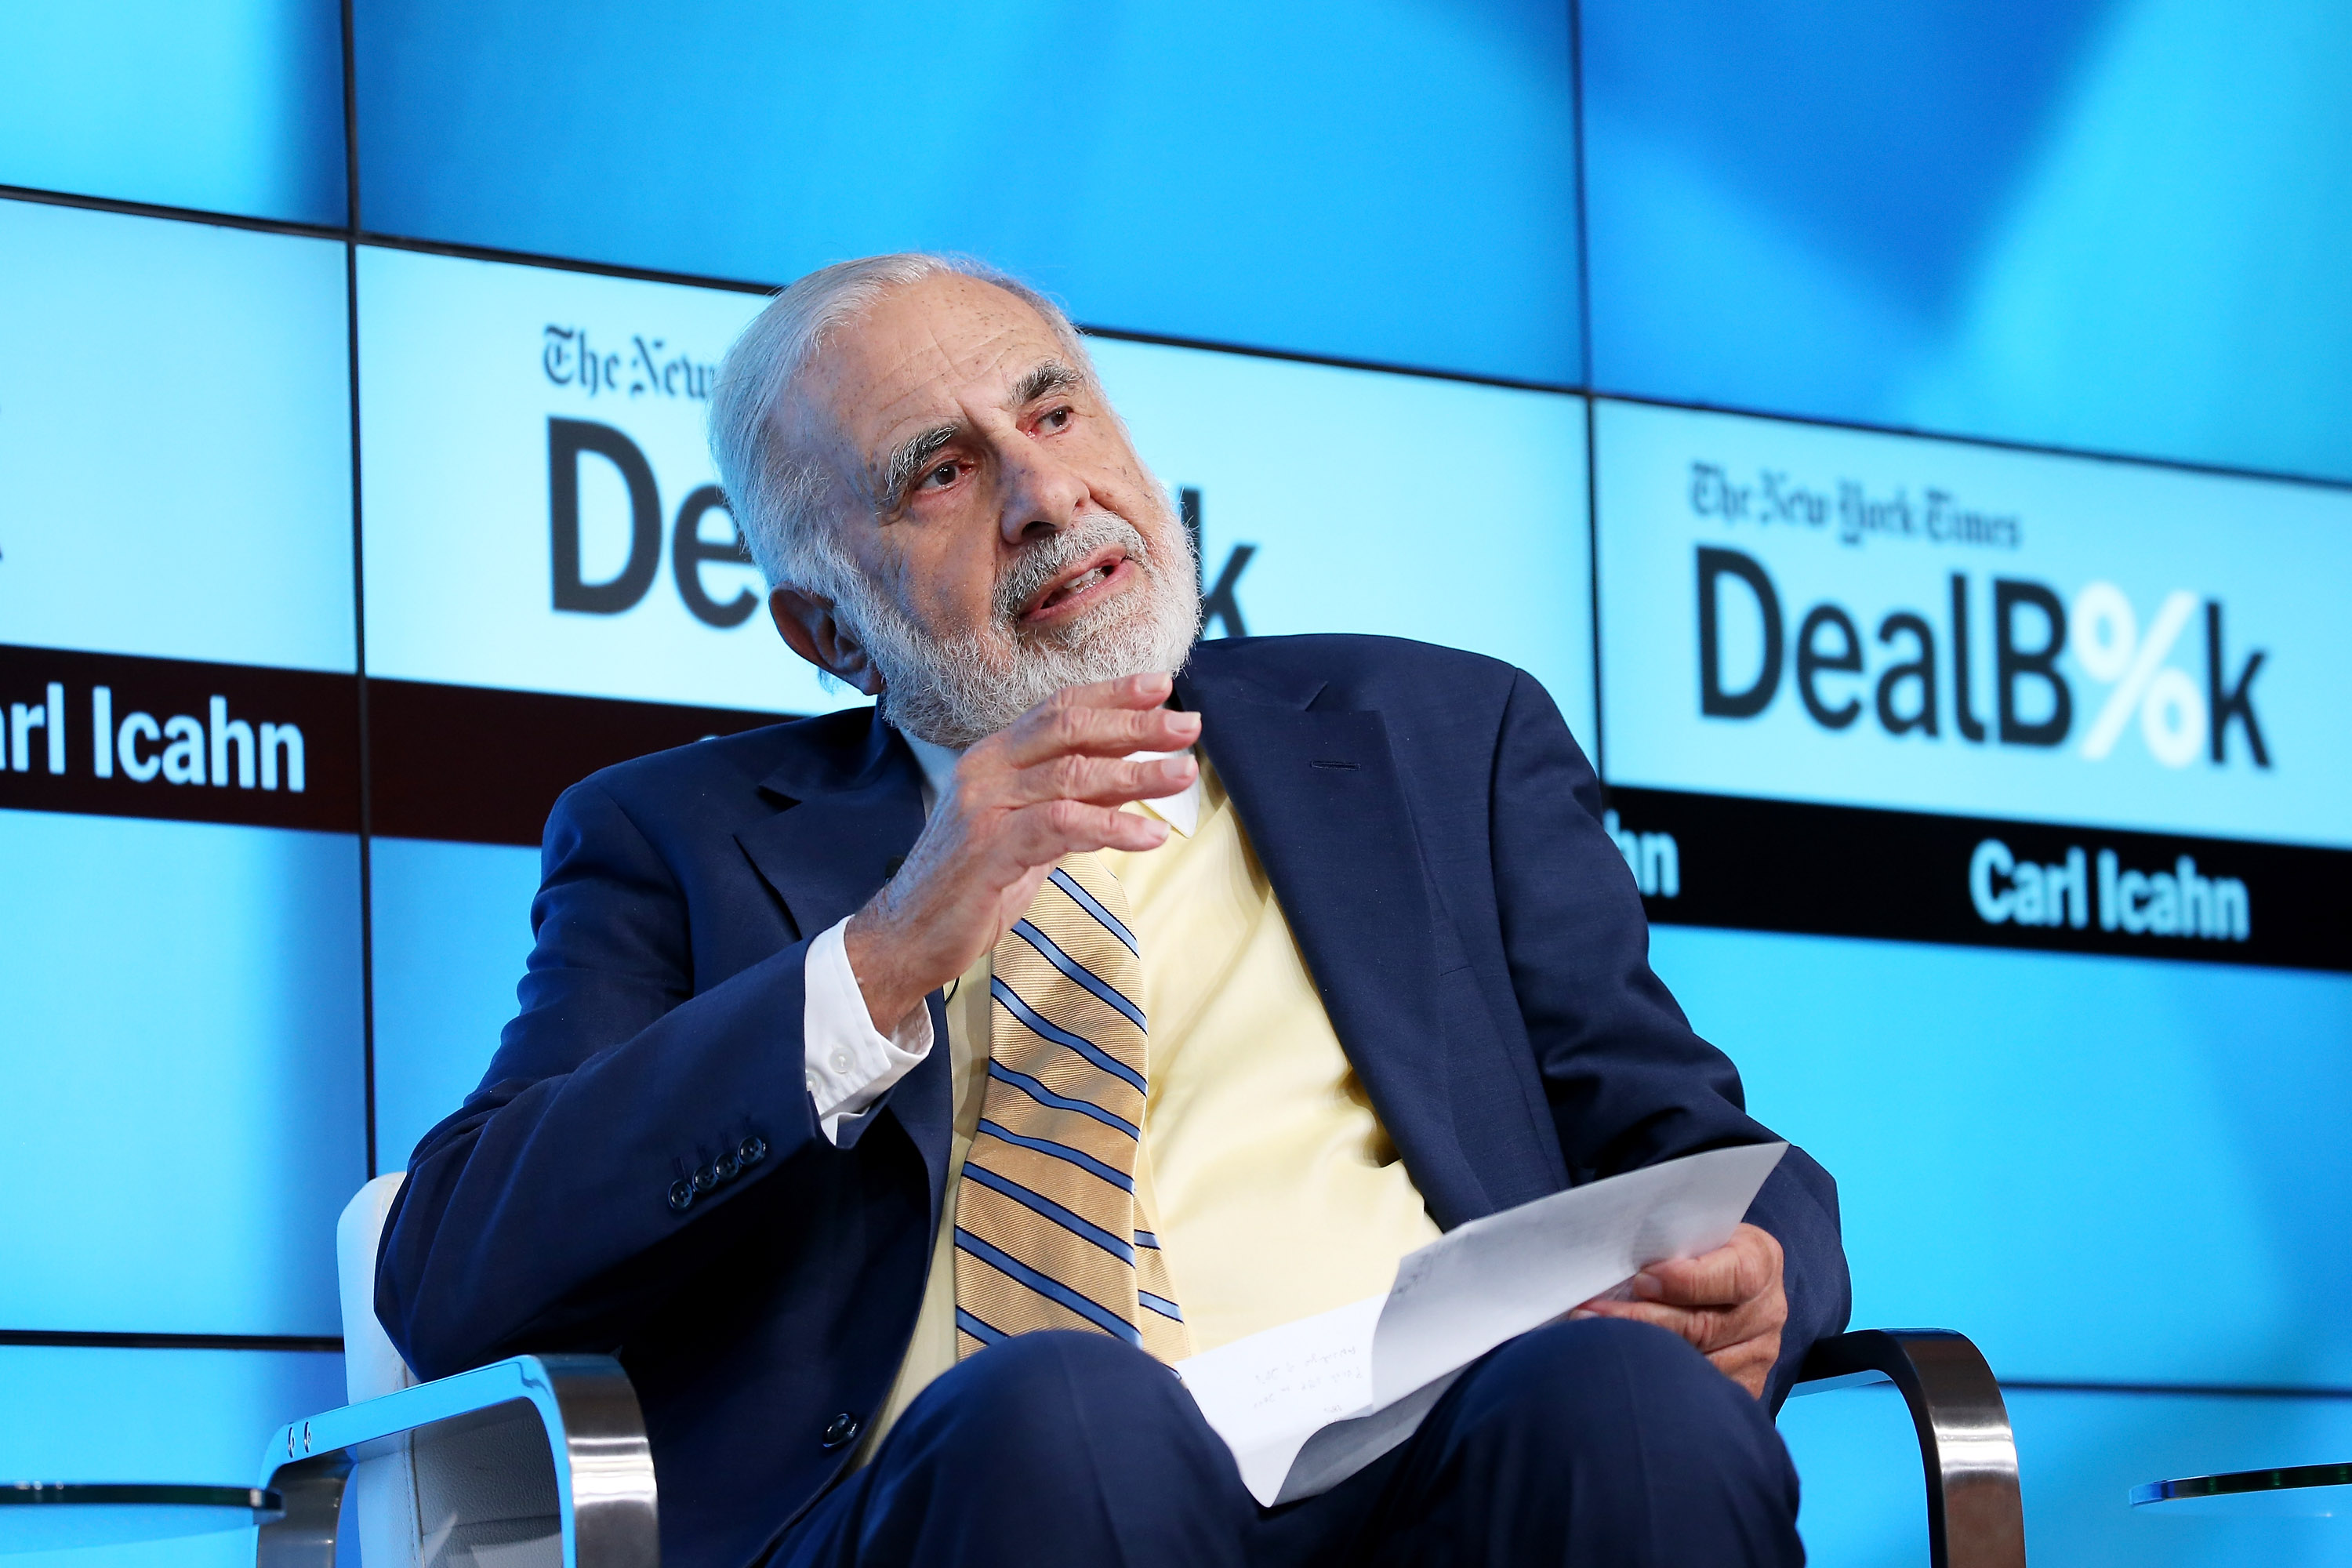 Chairman of Icahn Enterprises Carl Icahn participates in a panel discussion at the New York Times 2015 DealBook Conference at the Whitney Museum of American Art on November 3, 2015 in New York City.